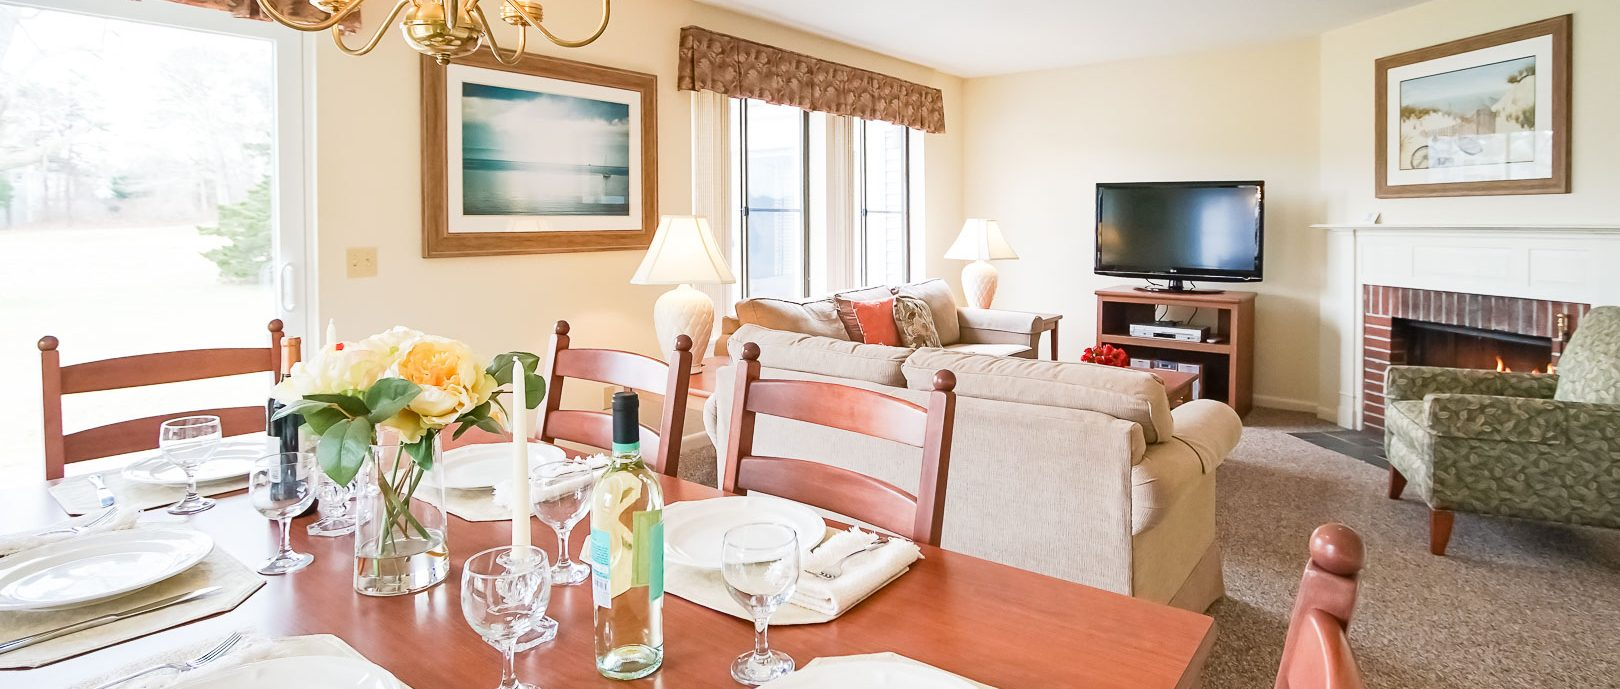 Peachy Affordable Accommodations In Brewster Cape Cod Ma Ibusinesslaw Wood Chair Design Ideas Ibusinesslaworg